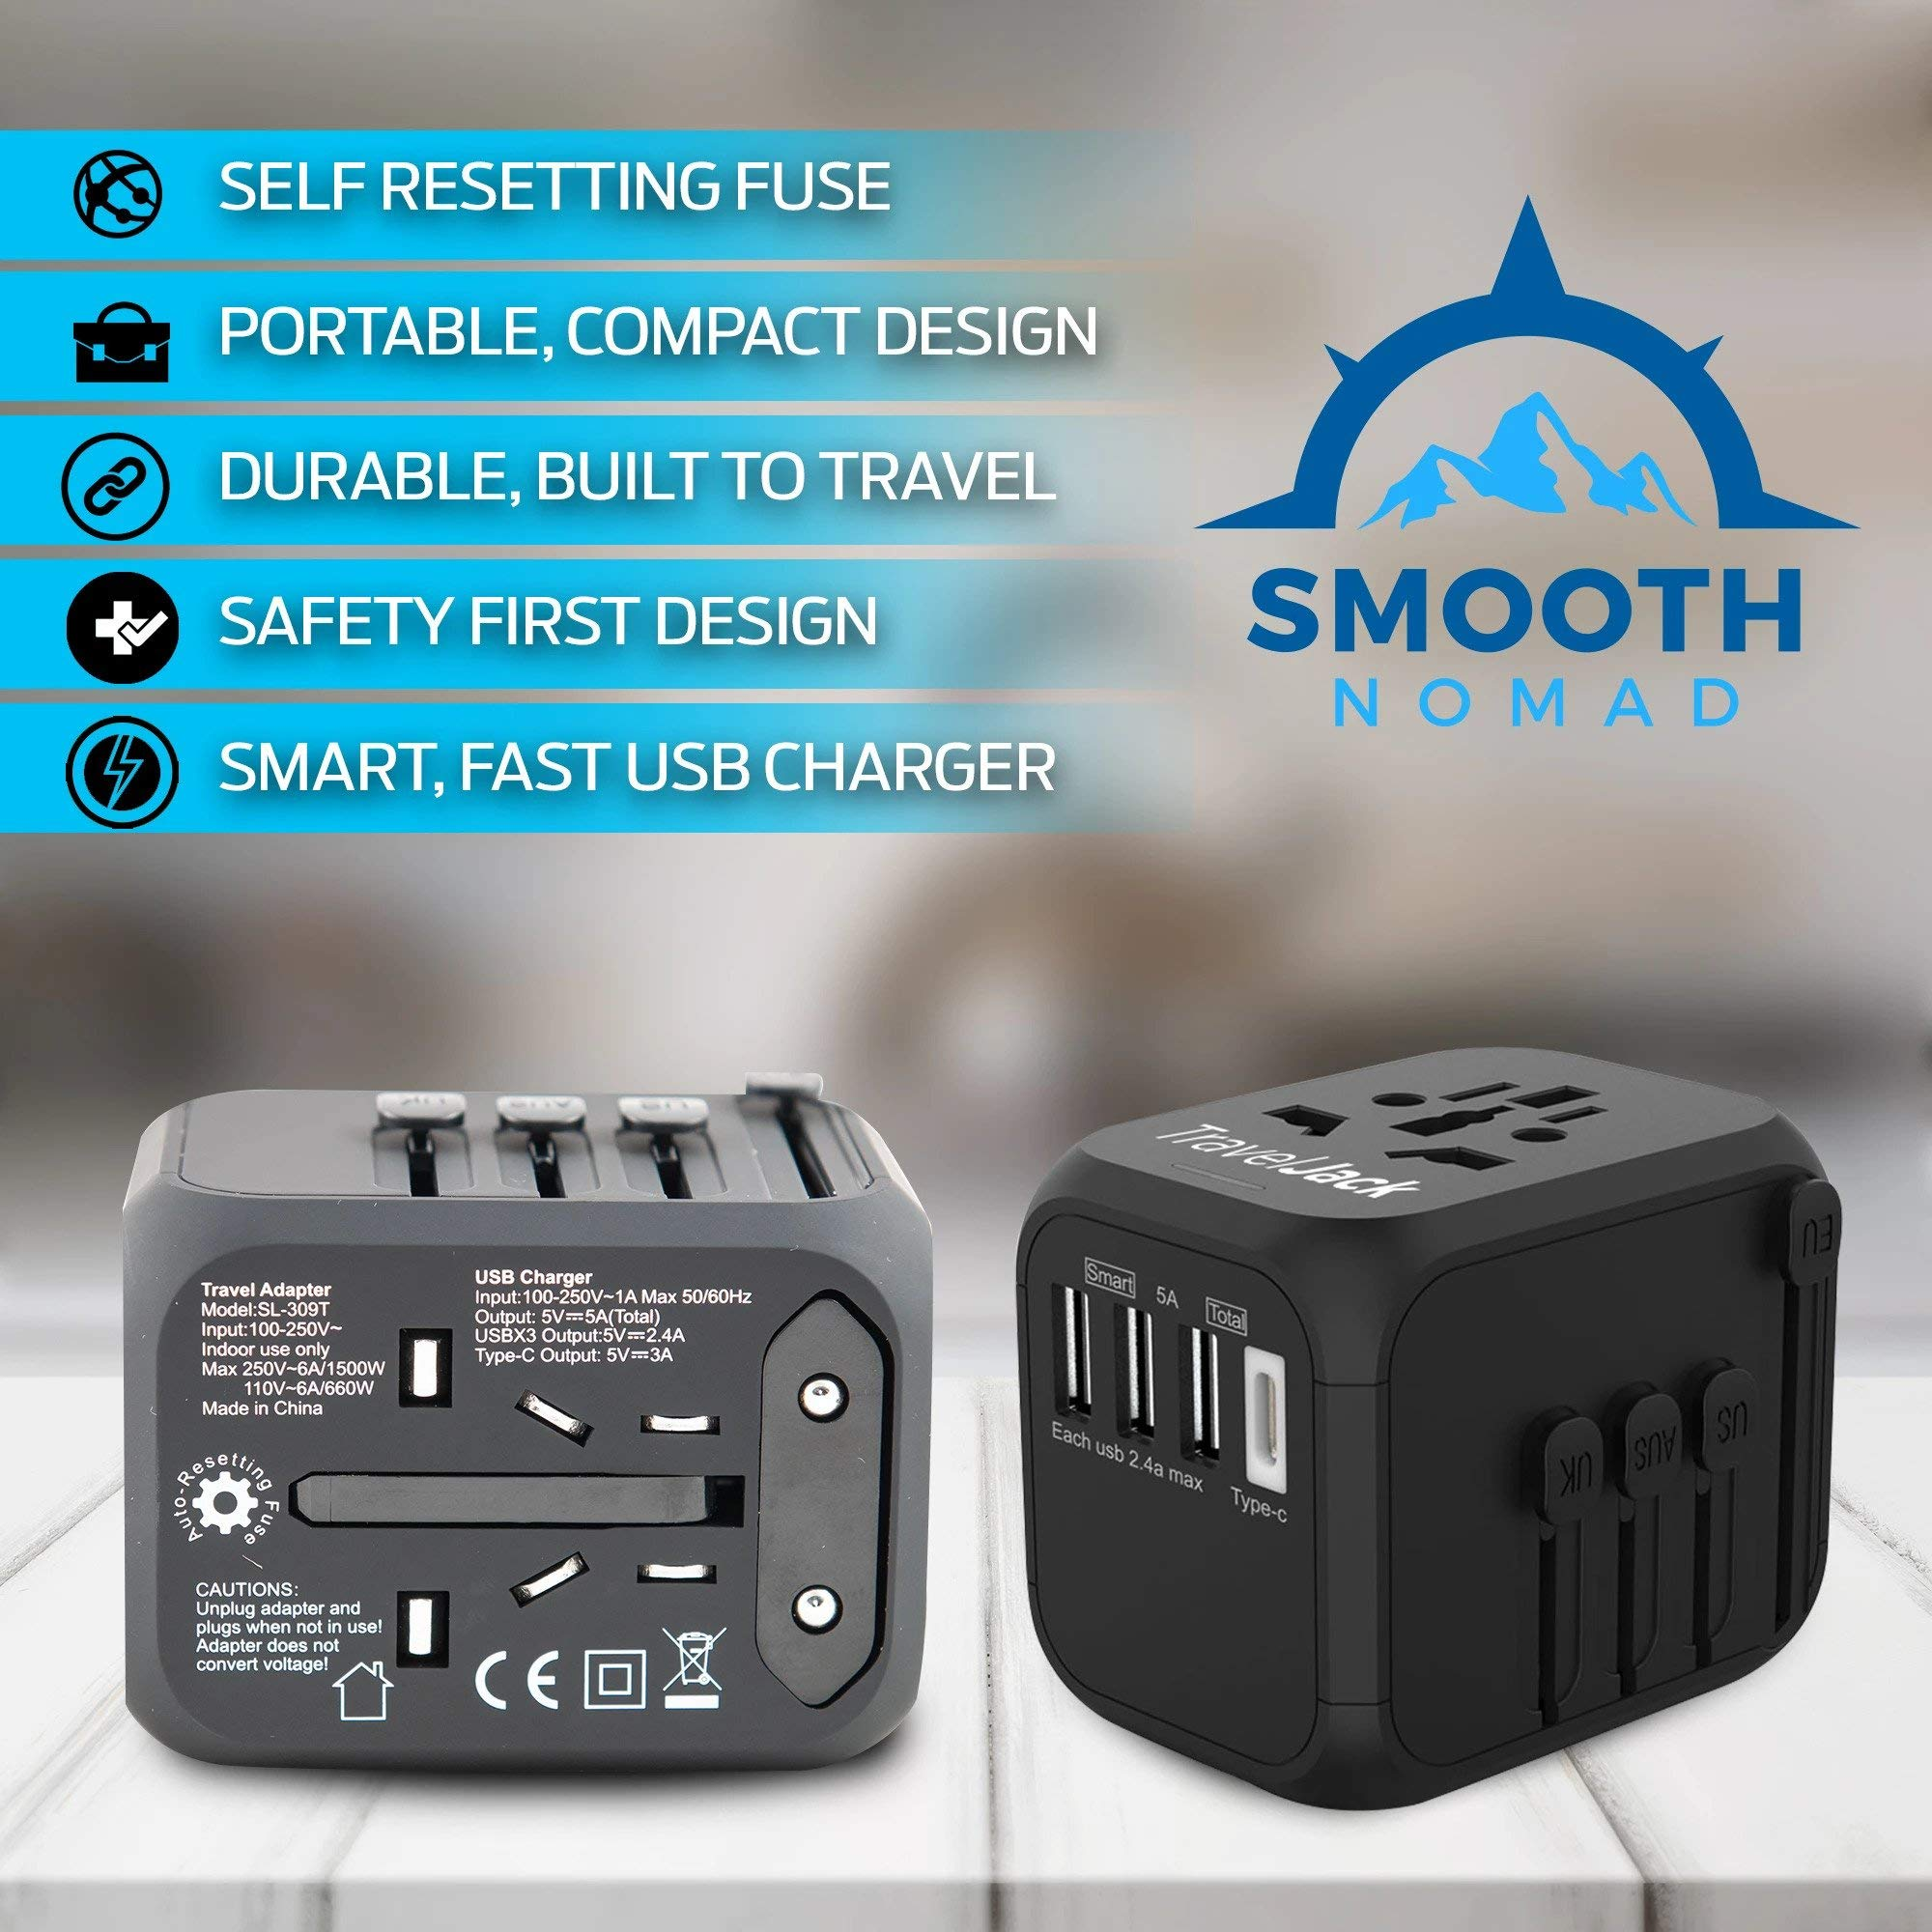 International Travel Adapter - Smart Plug Socket Converter for Europe, Asia, Africa, America - World Travel Adapter with USB, Type-C Wall Outlet Charger - Plug and Lock, Safety Surge Protection